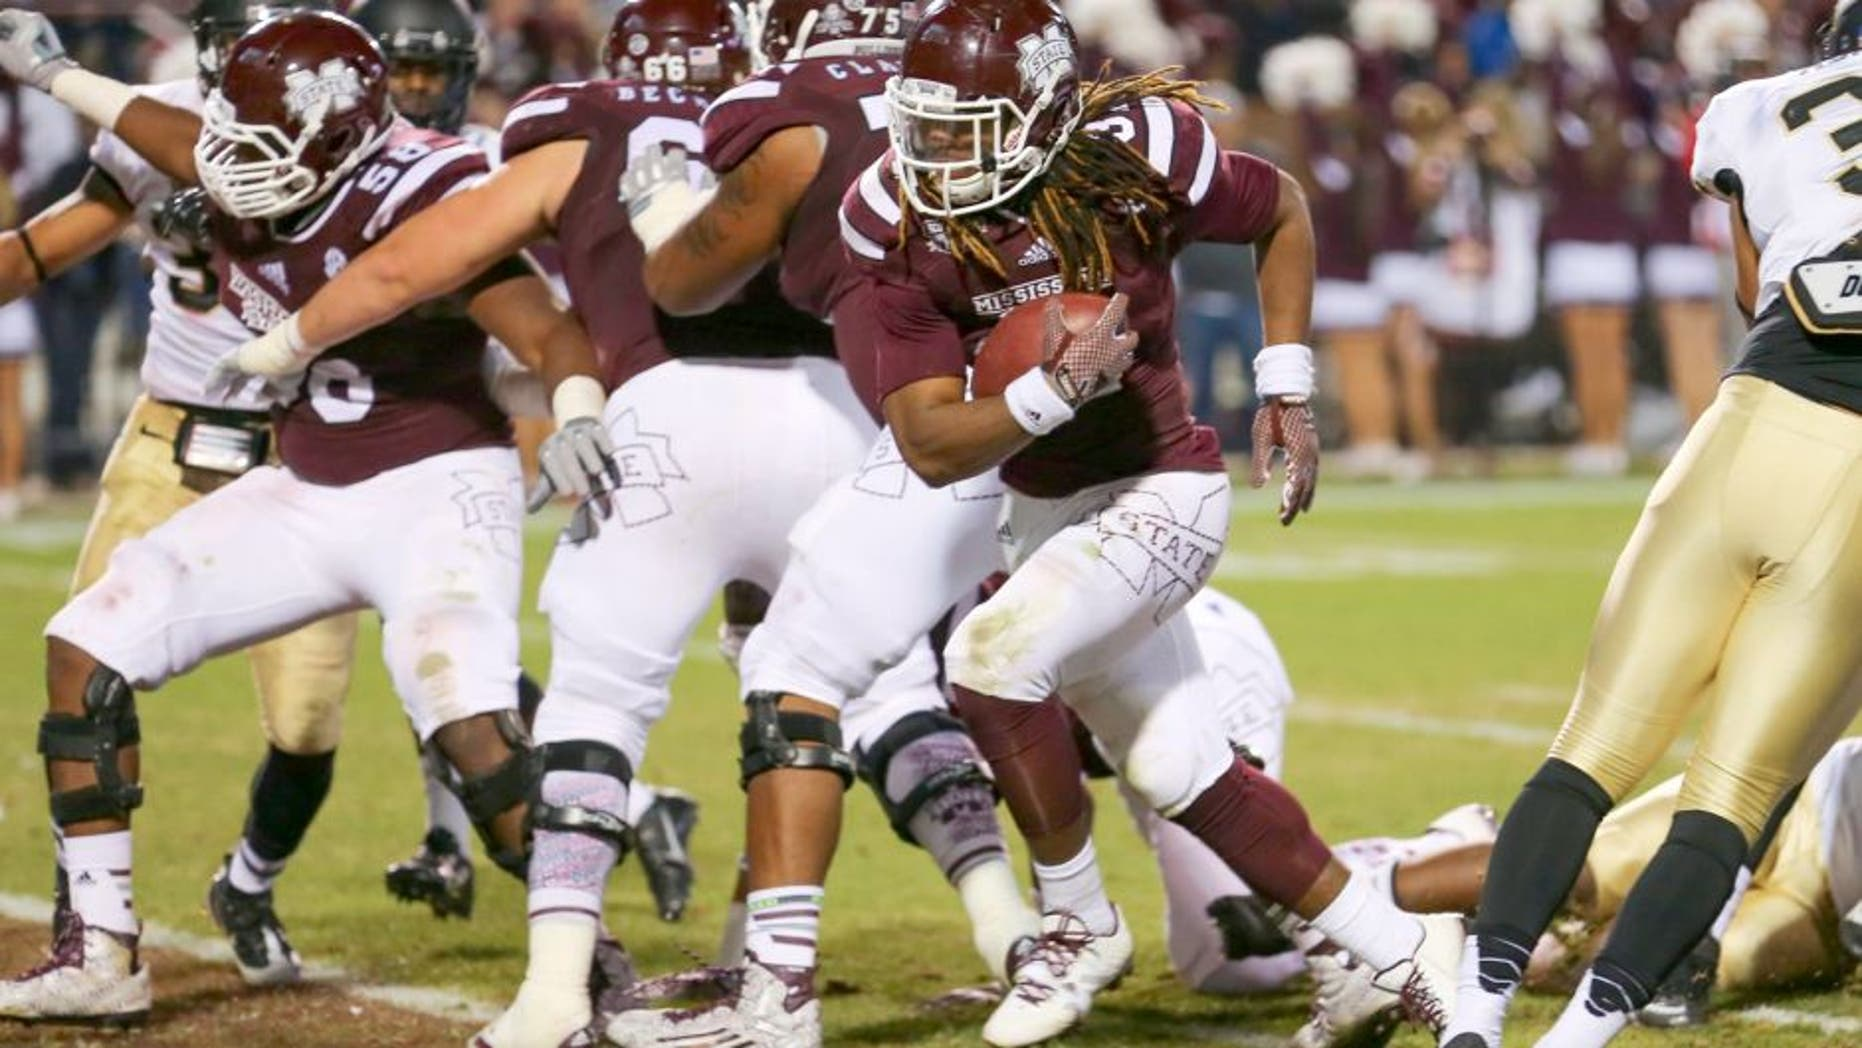 Nov 22, 2014; Starkville, MS, USA; Mississippi State Bulldogs running back Ashton Shumpert (32) carries the ball in for a touchdown during the game against the Vanderbilt Commodores at Davis Wade Stadium. Mandatory Credit: Spruce Derden-USA TODAY Sports